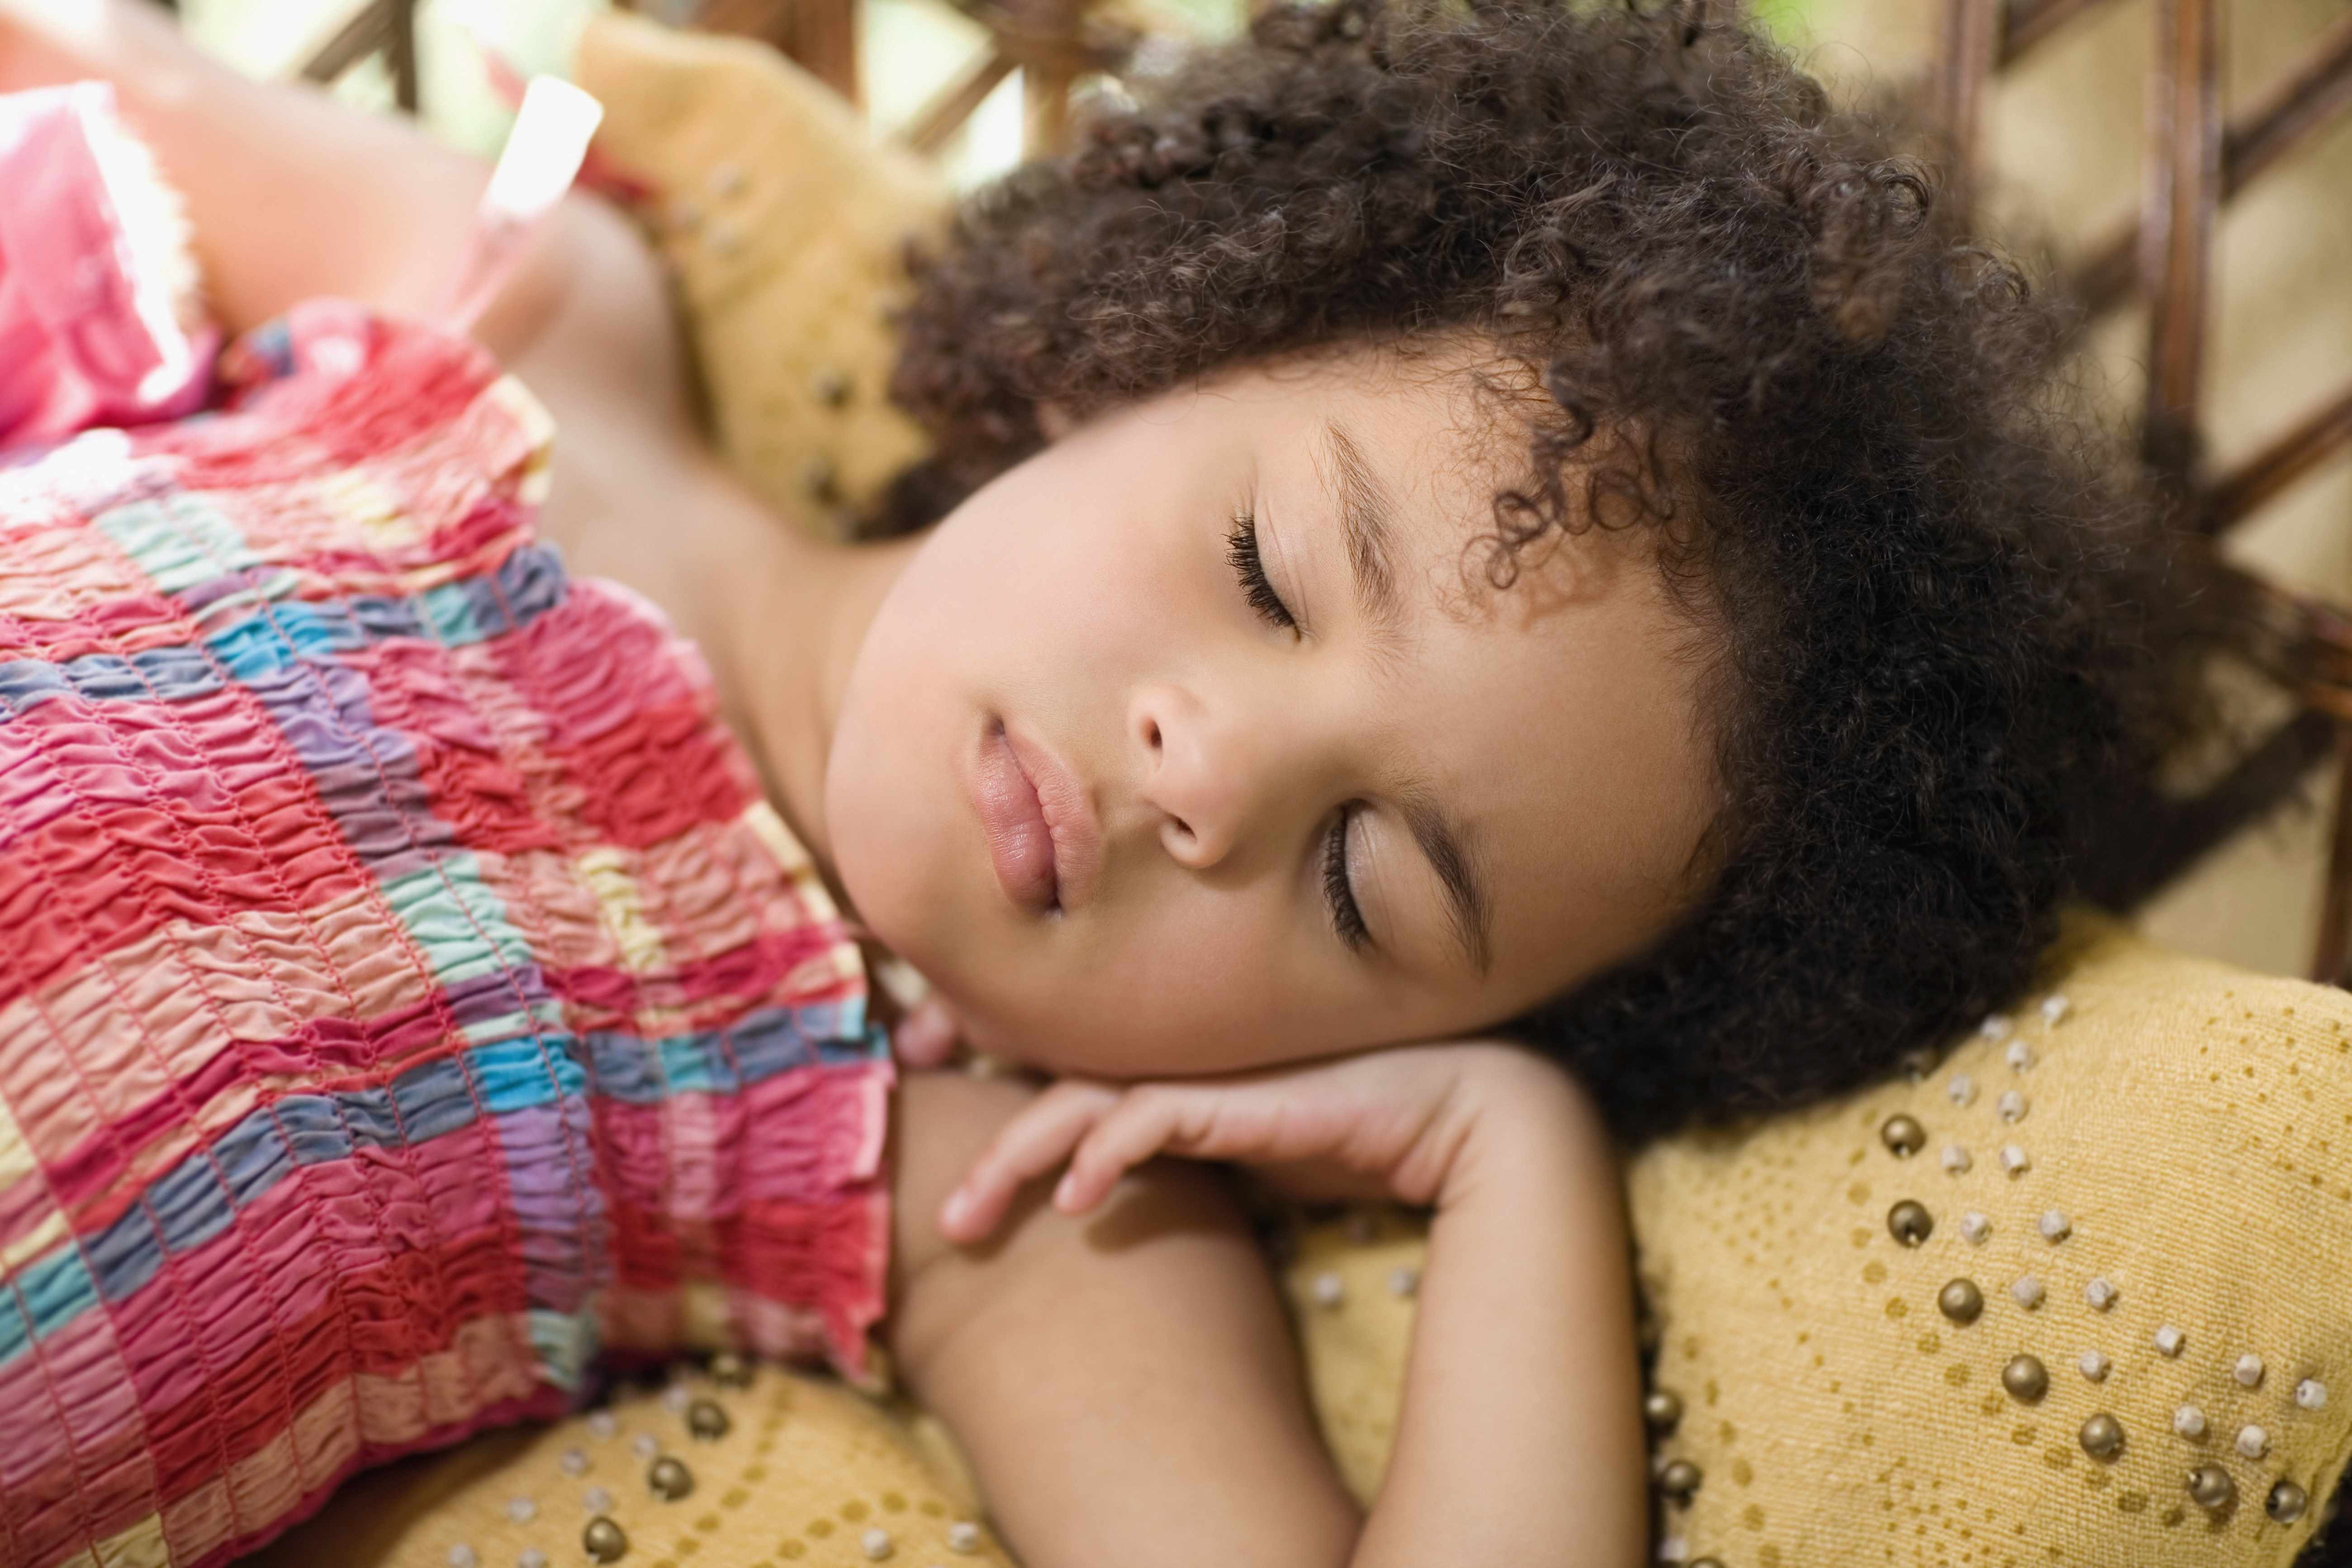 a little girl in a sundress sleeping or napping on a bed